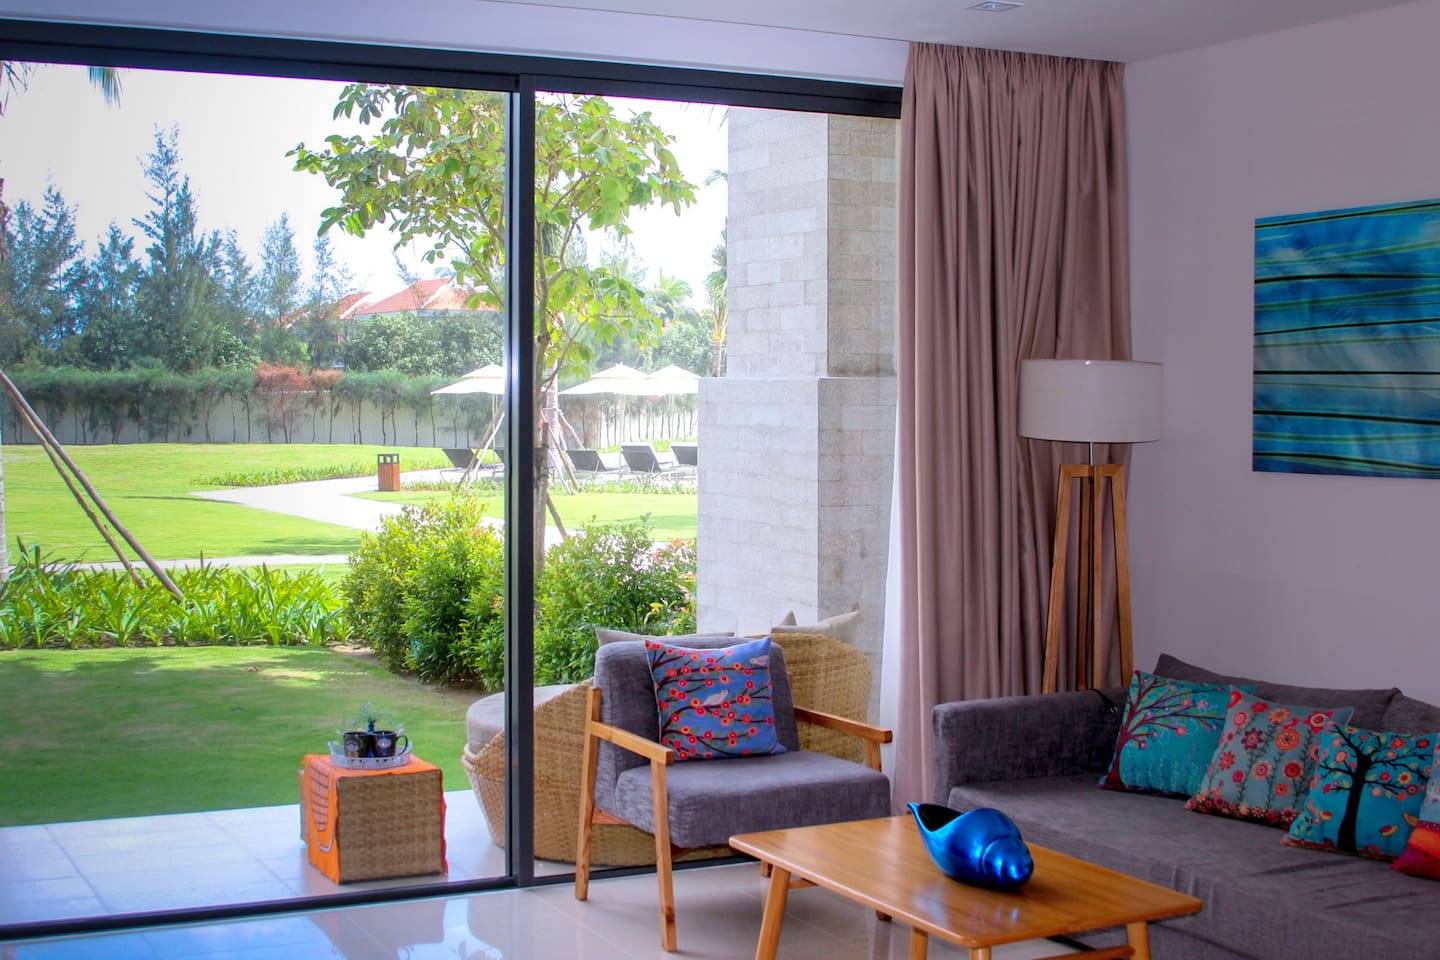 The living room is connected with the beautiful greenery outside. The pool is to the right of the garden.